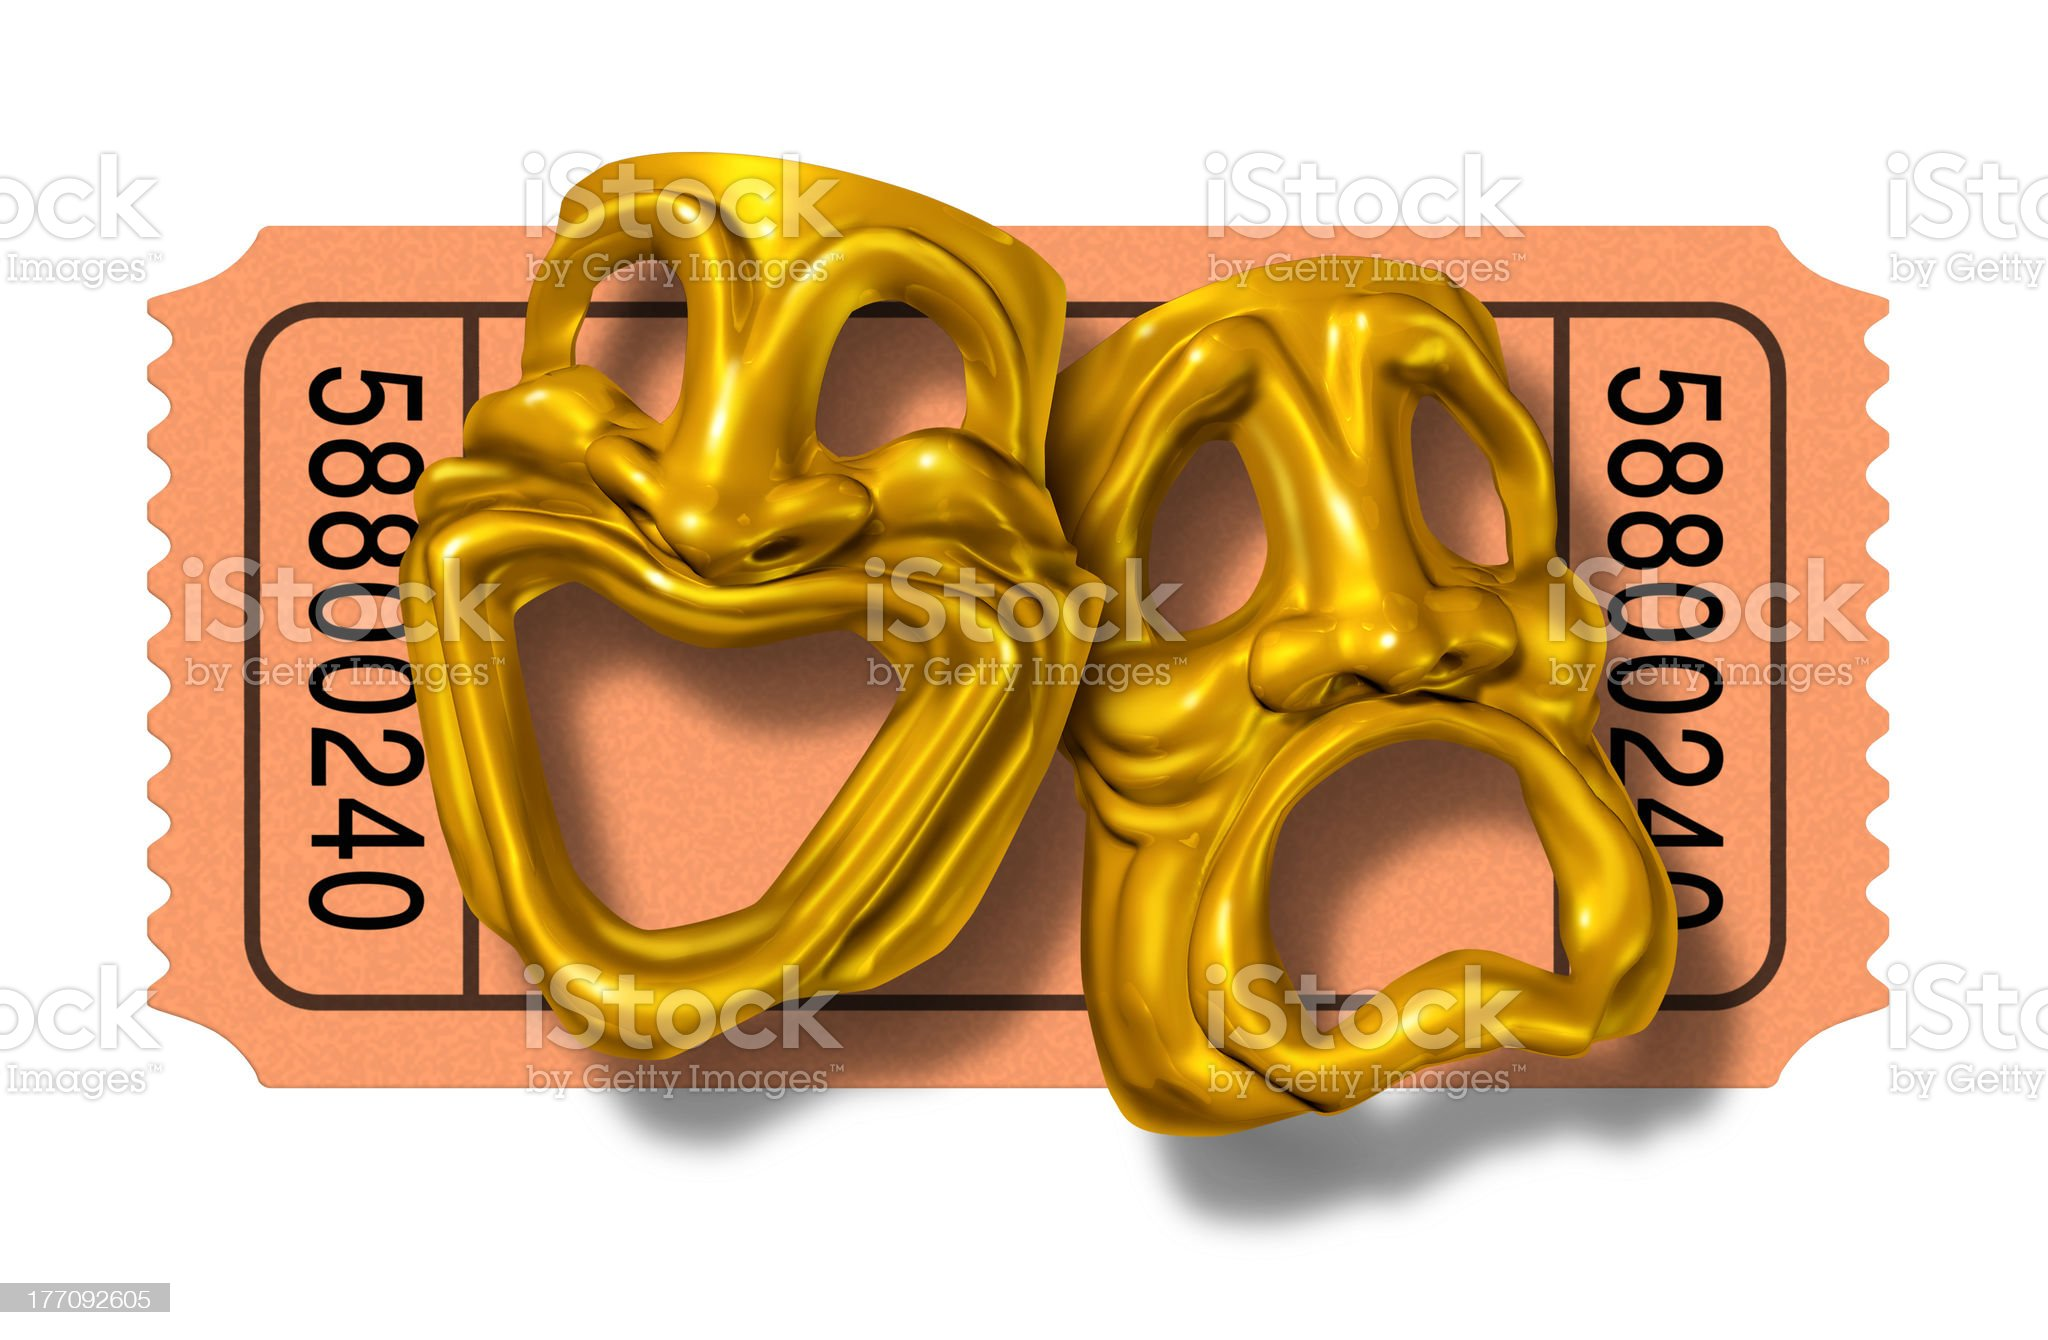 Movie ticket stub with gold comedy and tragedy masks royalty-free stock photo